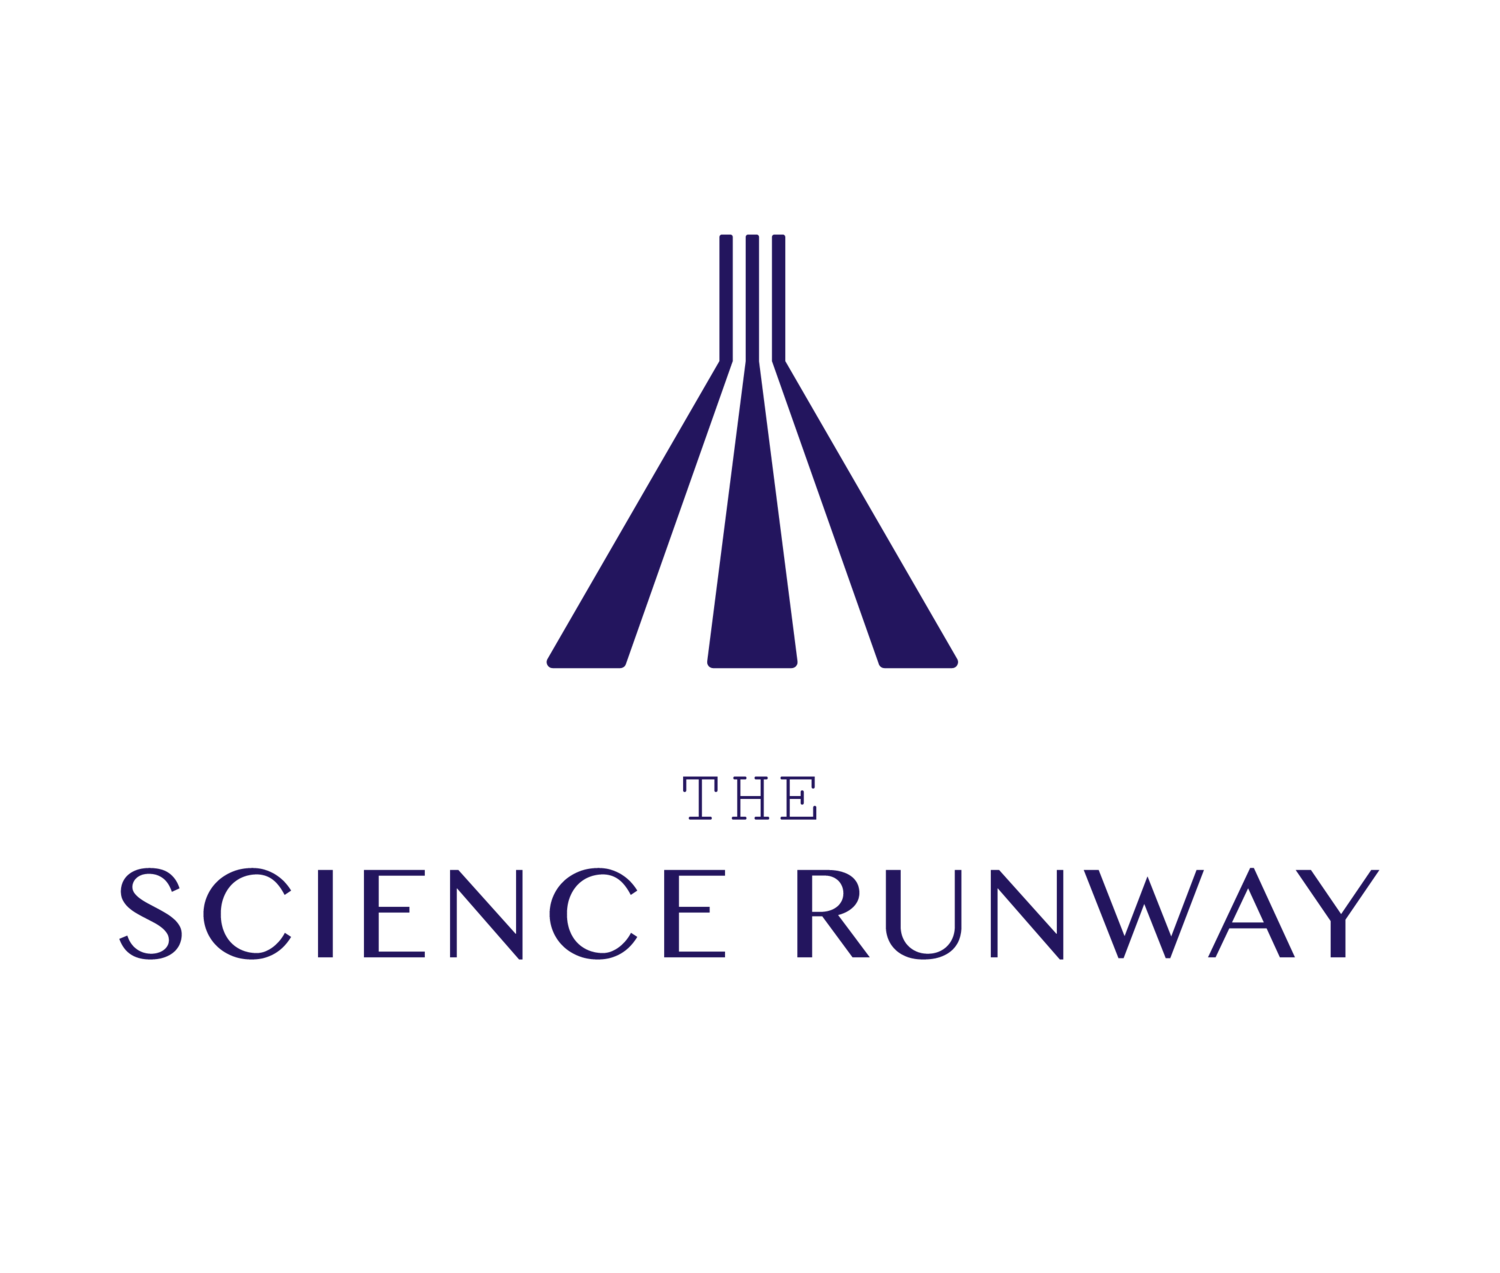 The Science Runway